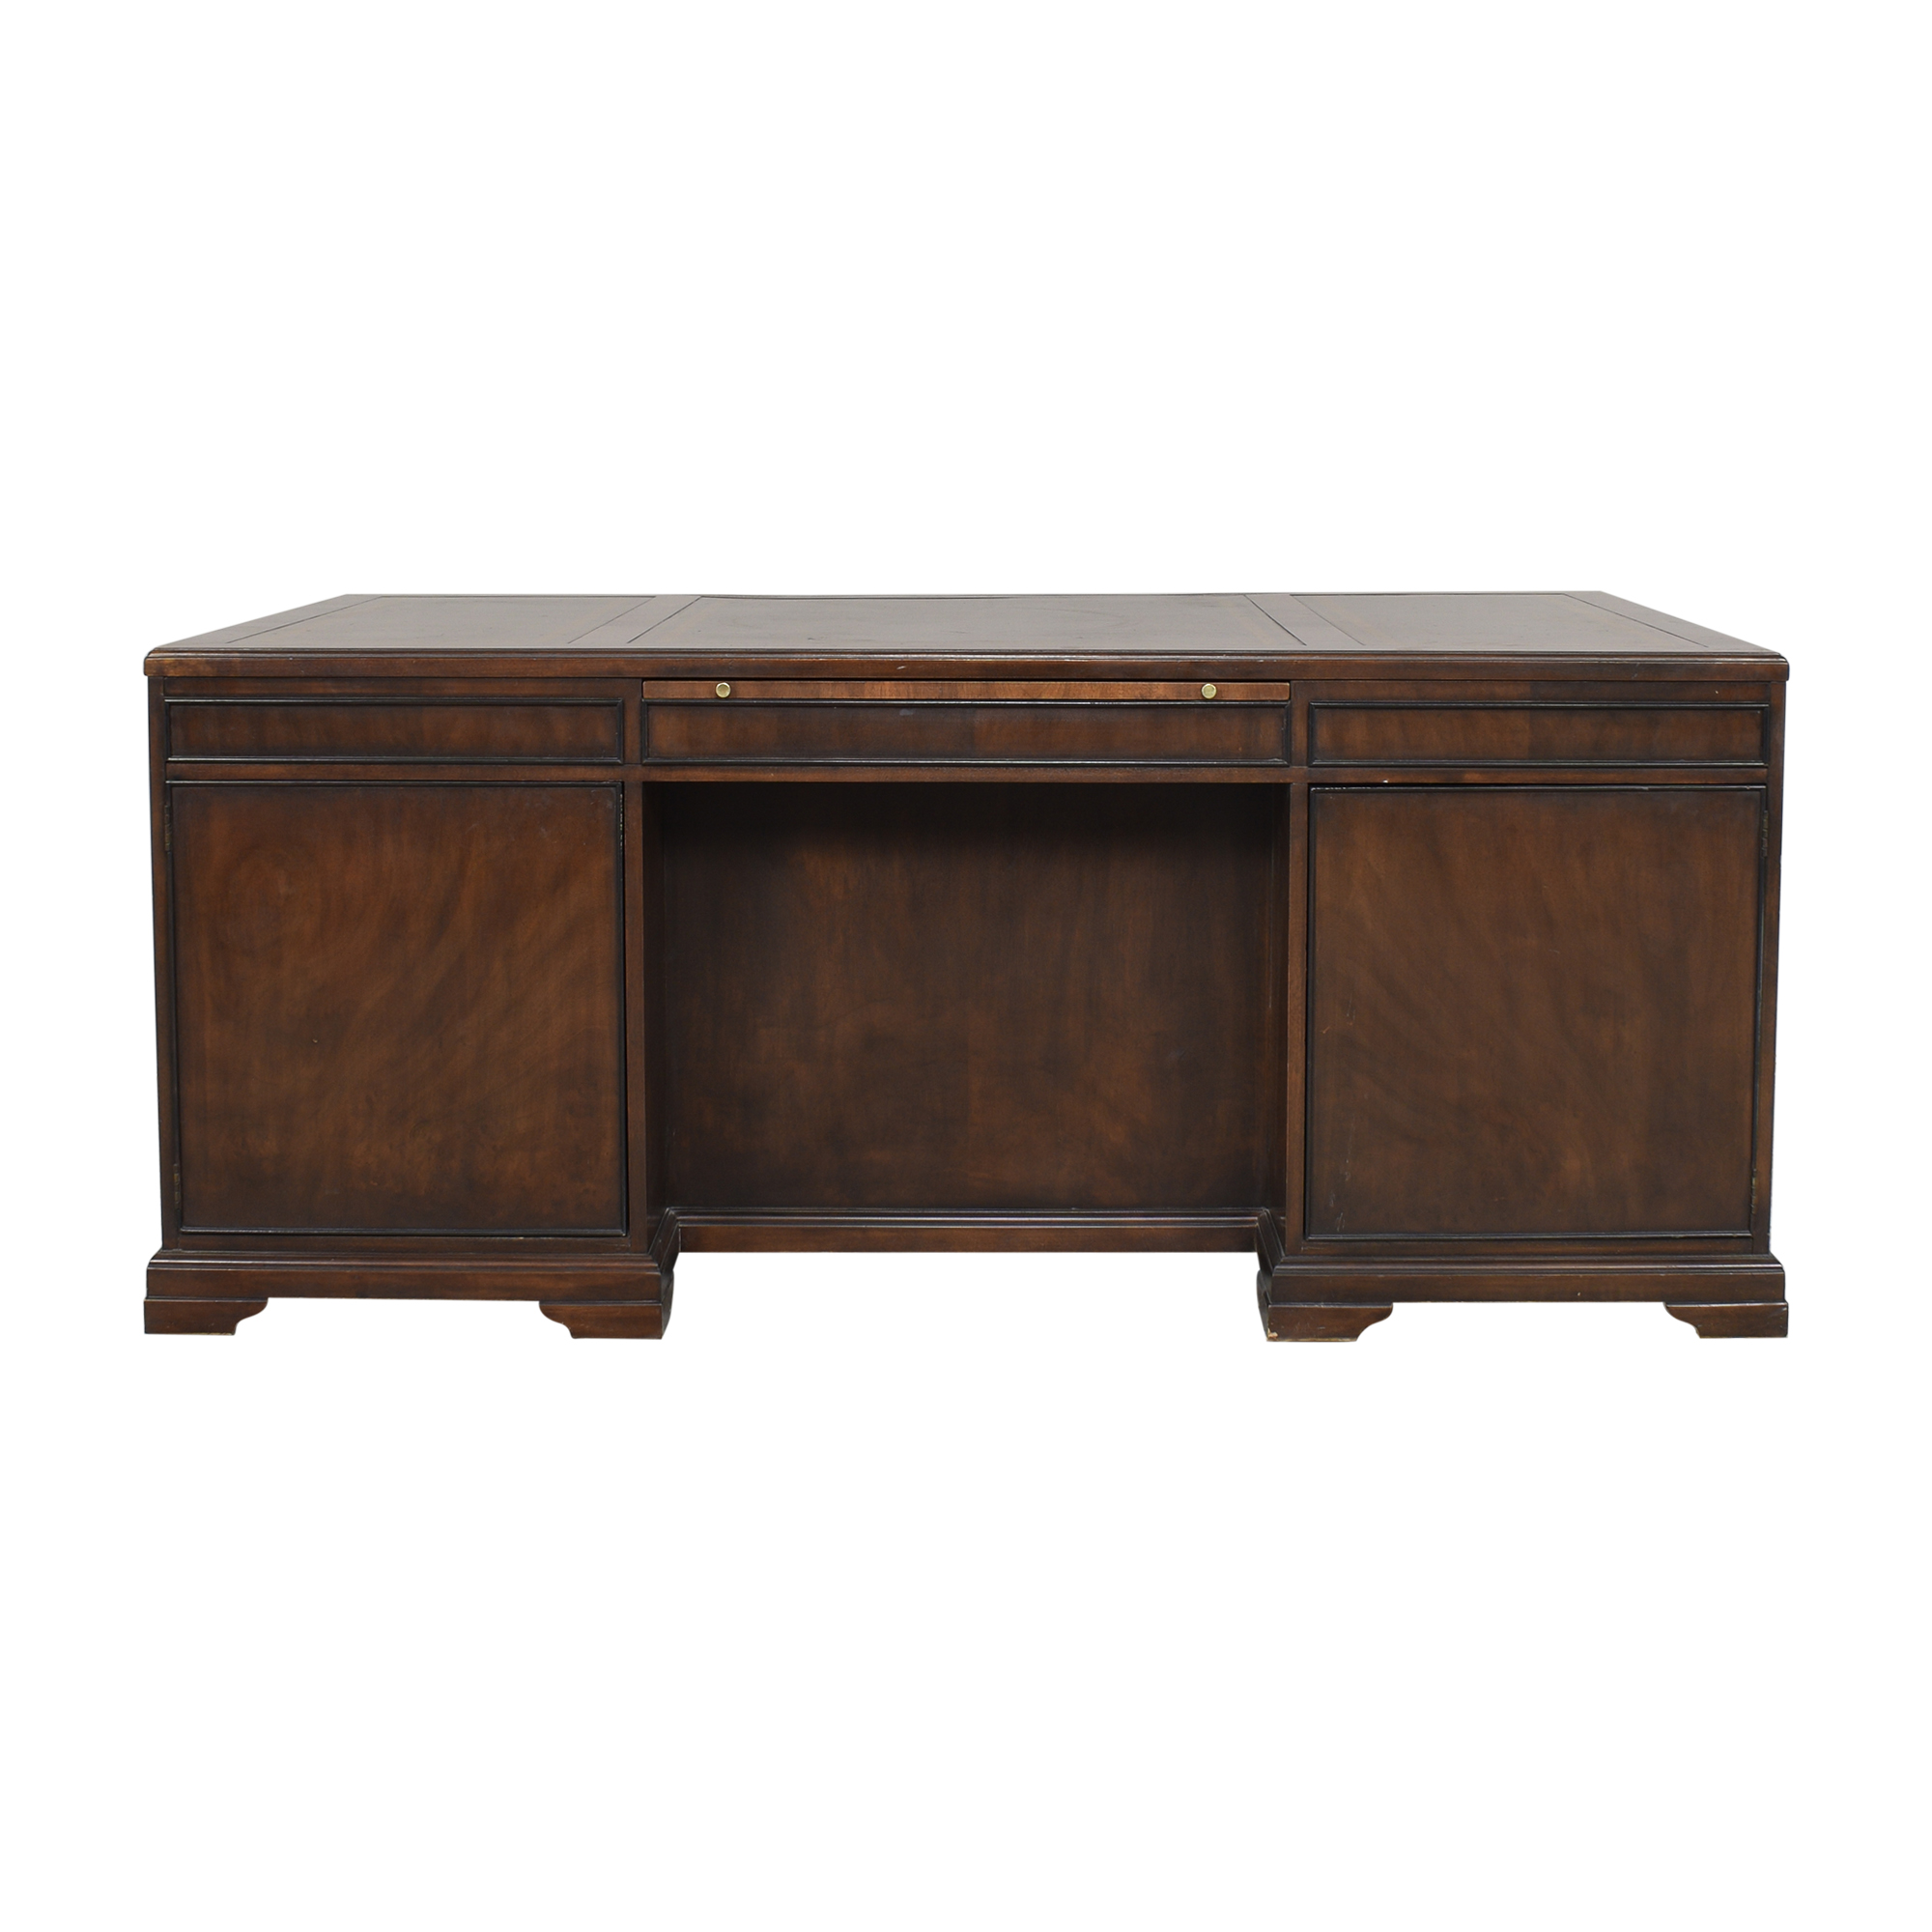 Executive Desk with Drawers and Cabinets brown